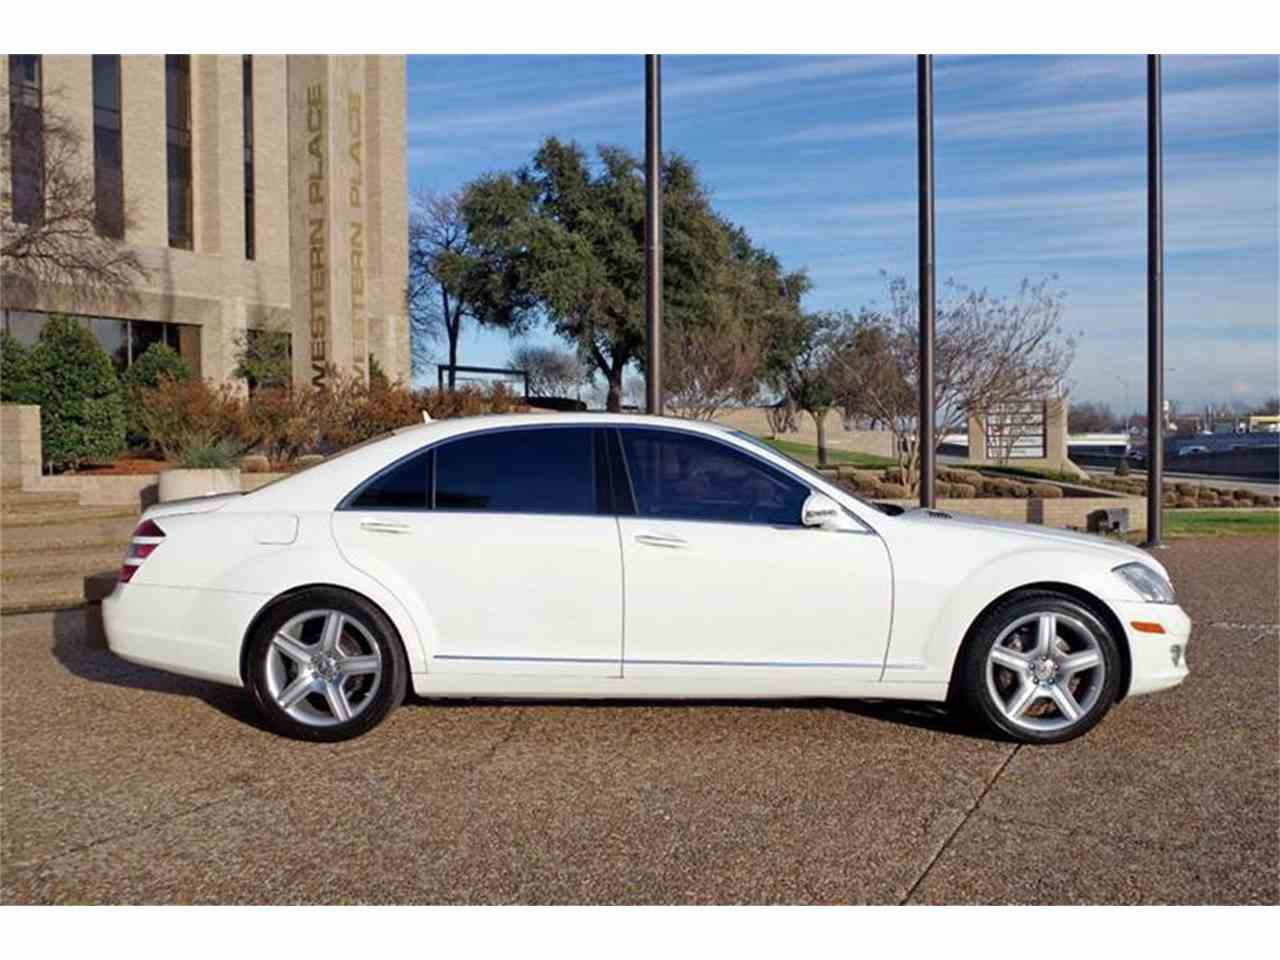 2007 mercedes benz s class for sale cc for 2007 mercedes benz s class for sale